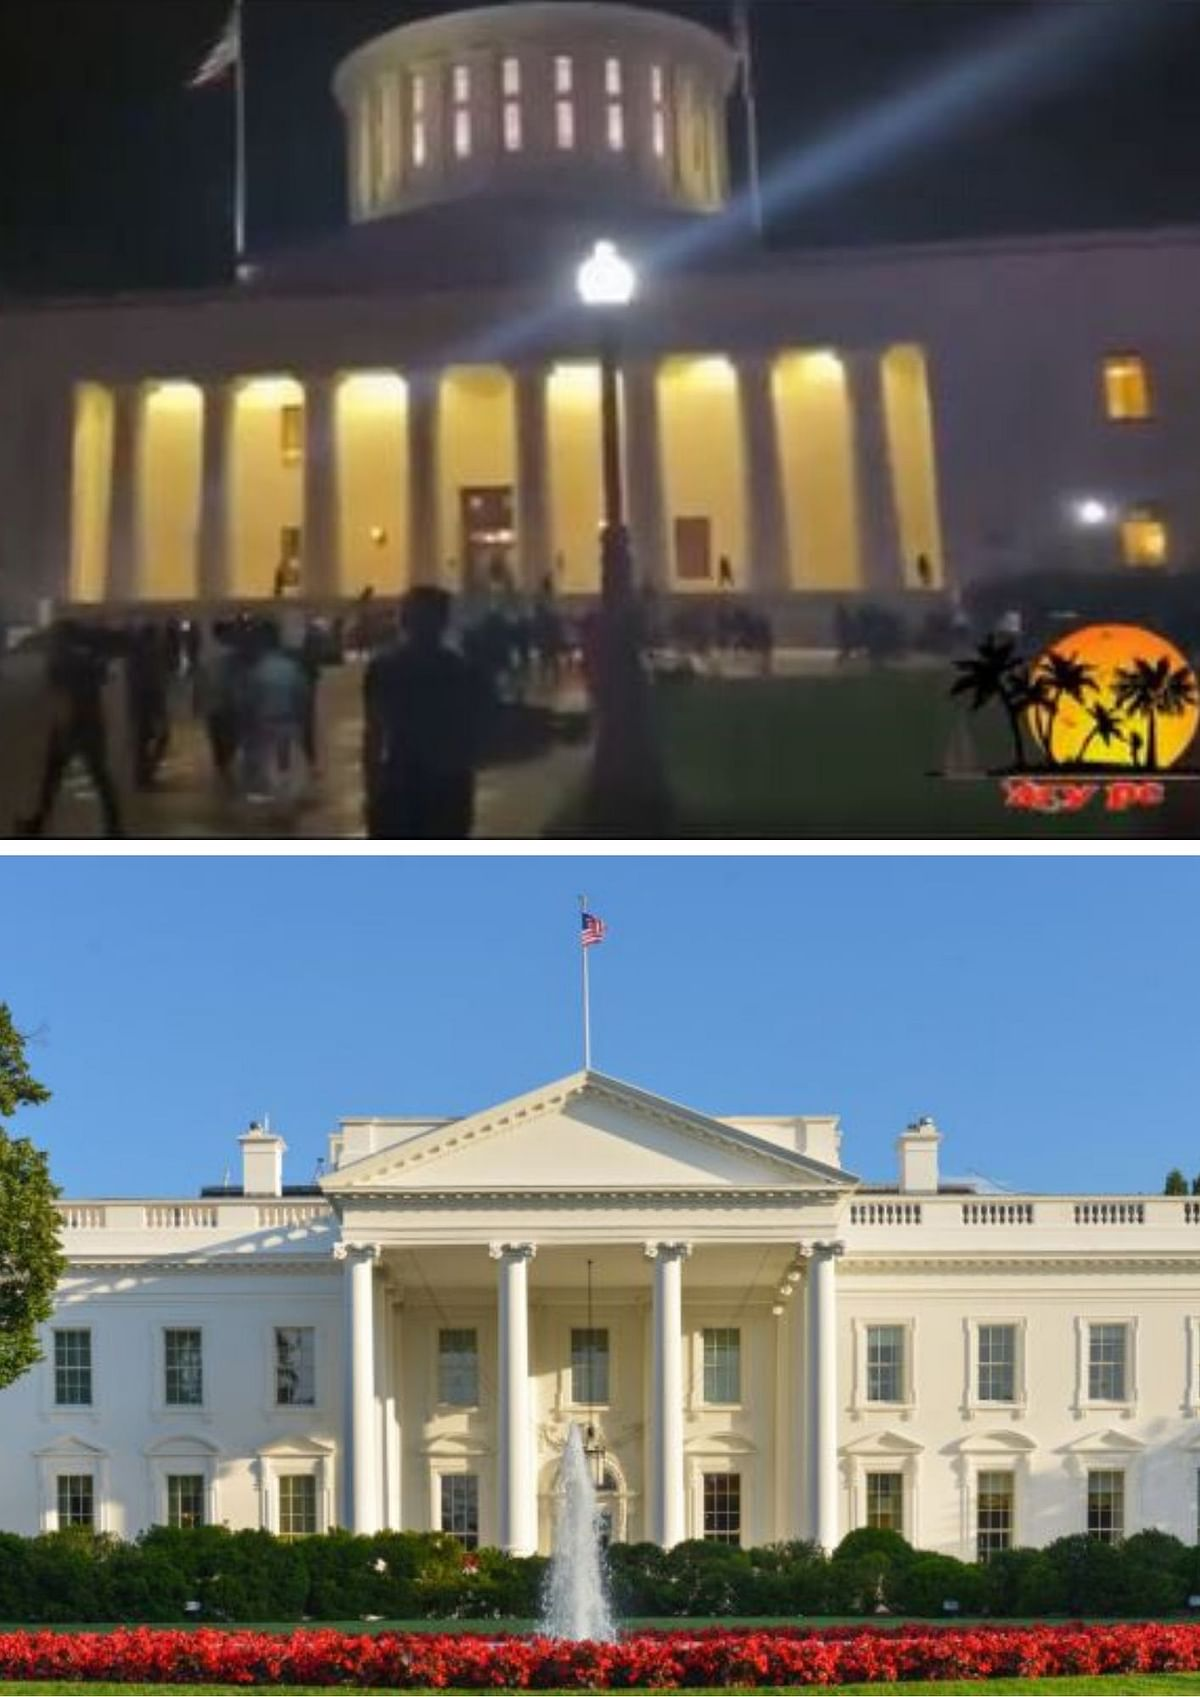 Building in the viral video (Above), The White House (Below)/Shutterstock Image